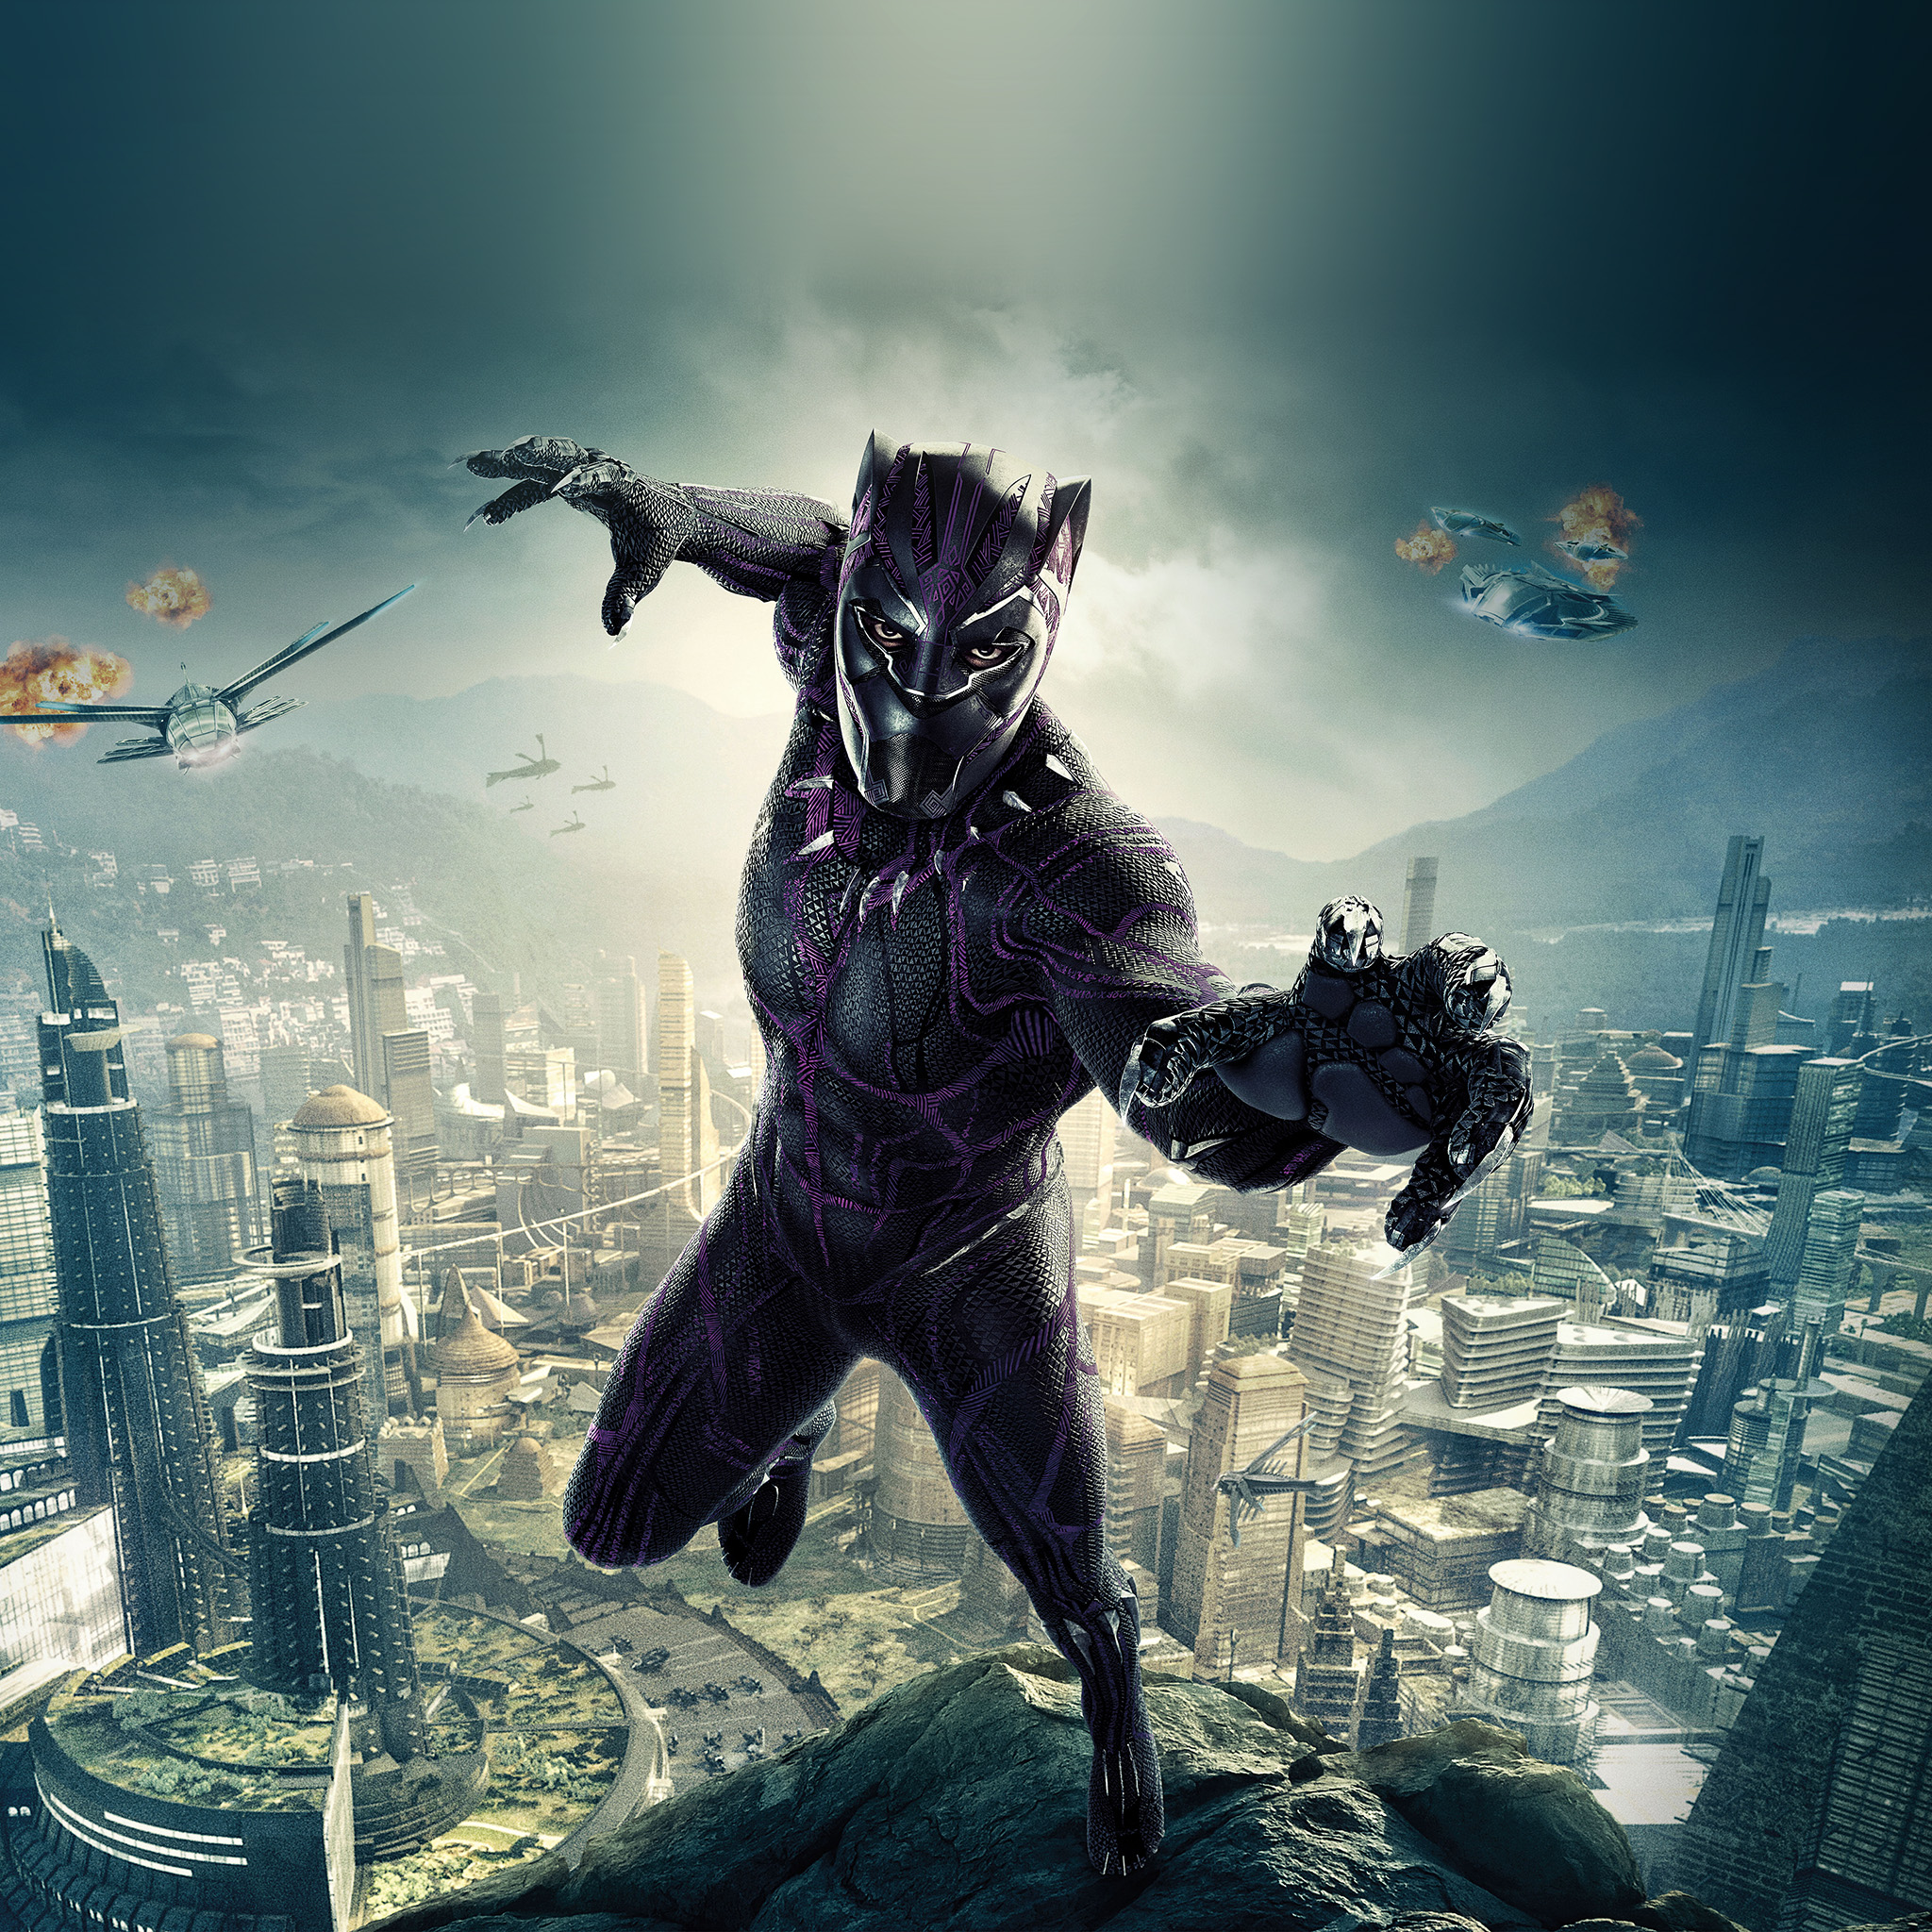 Be00-marvel-film-hero-blackpanther-art-illustration-wallpaper